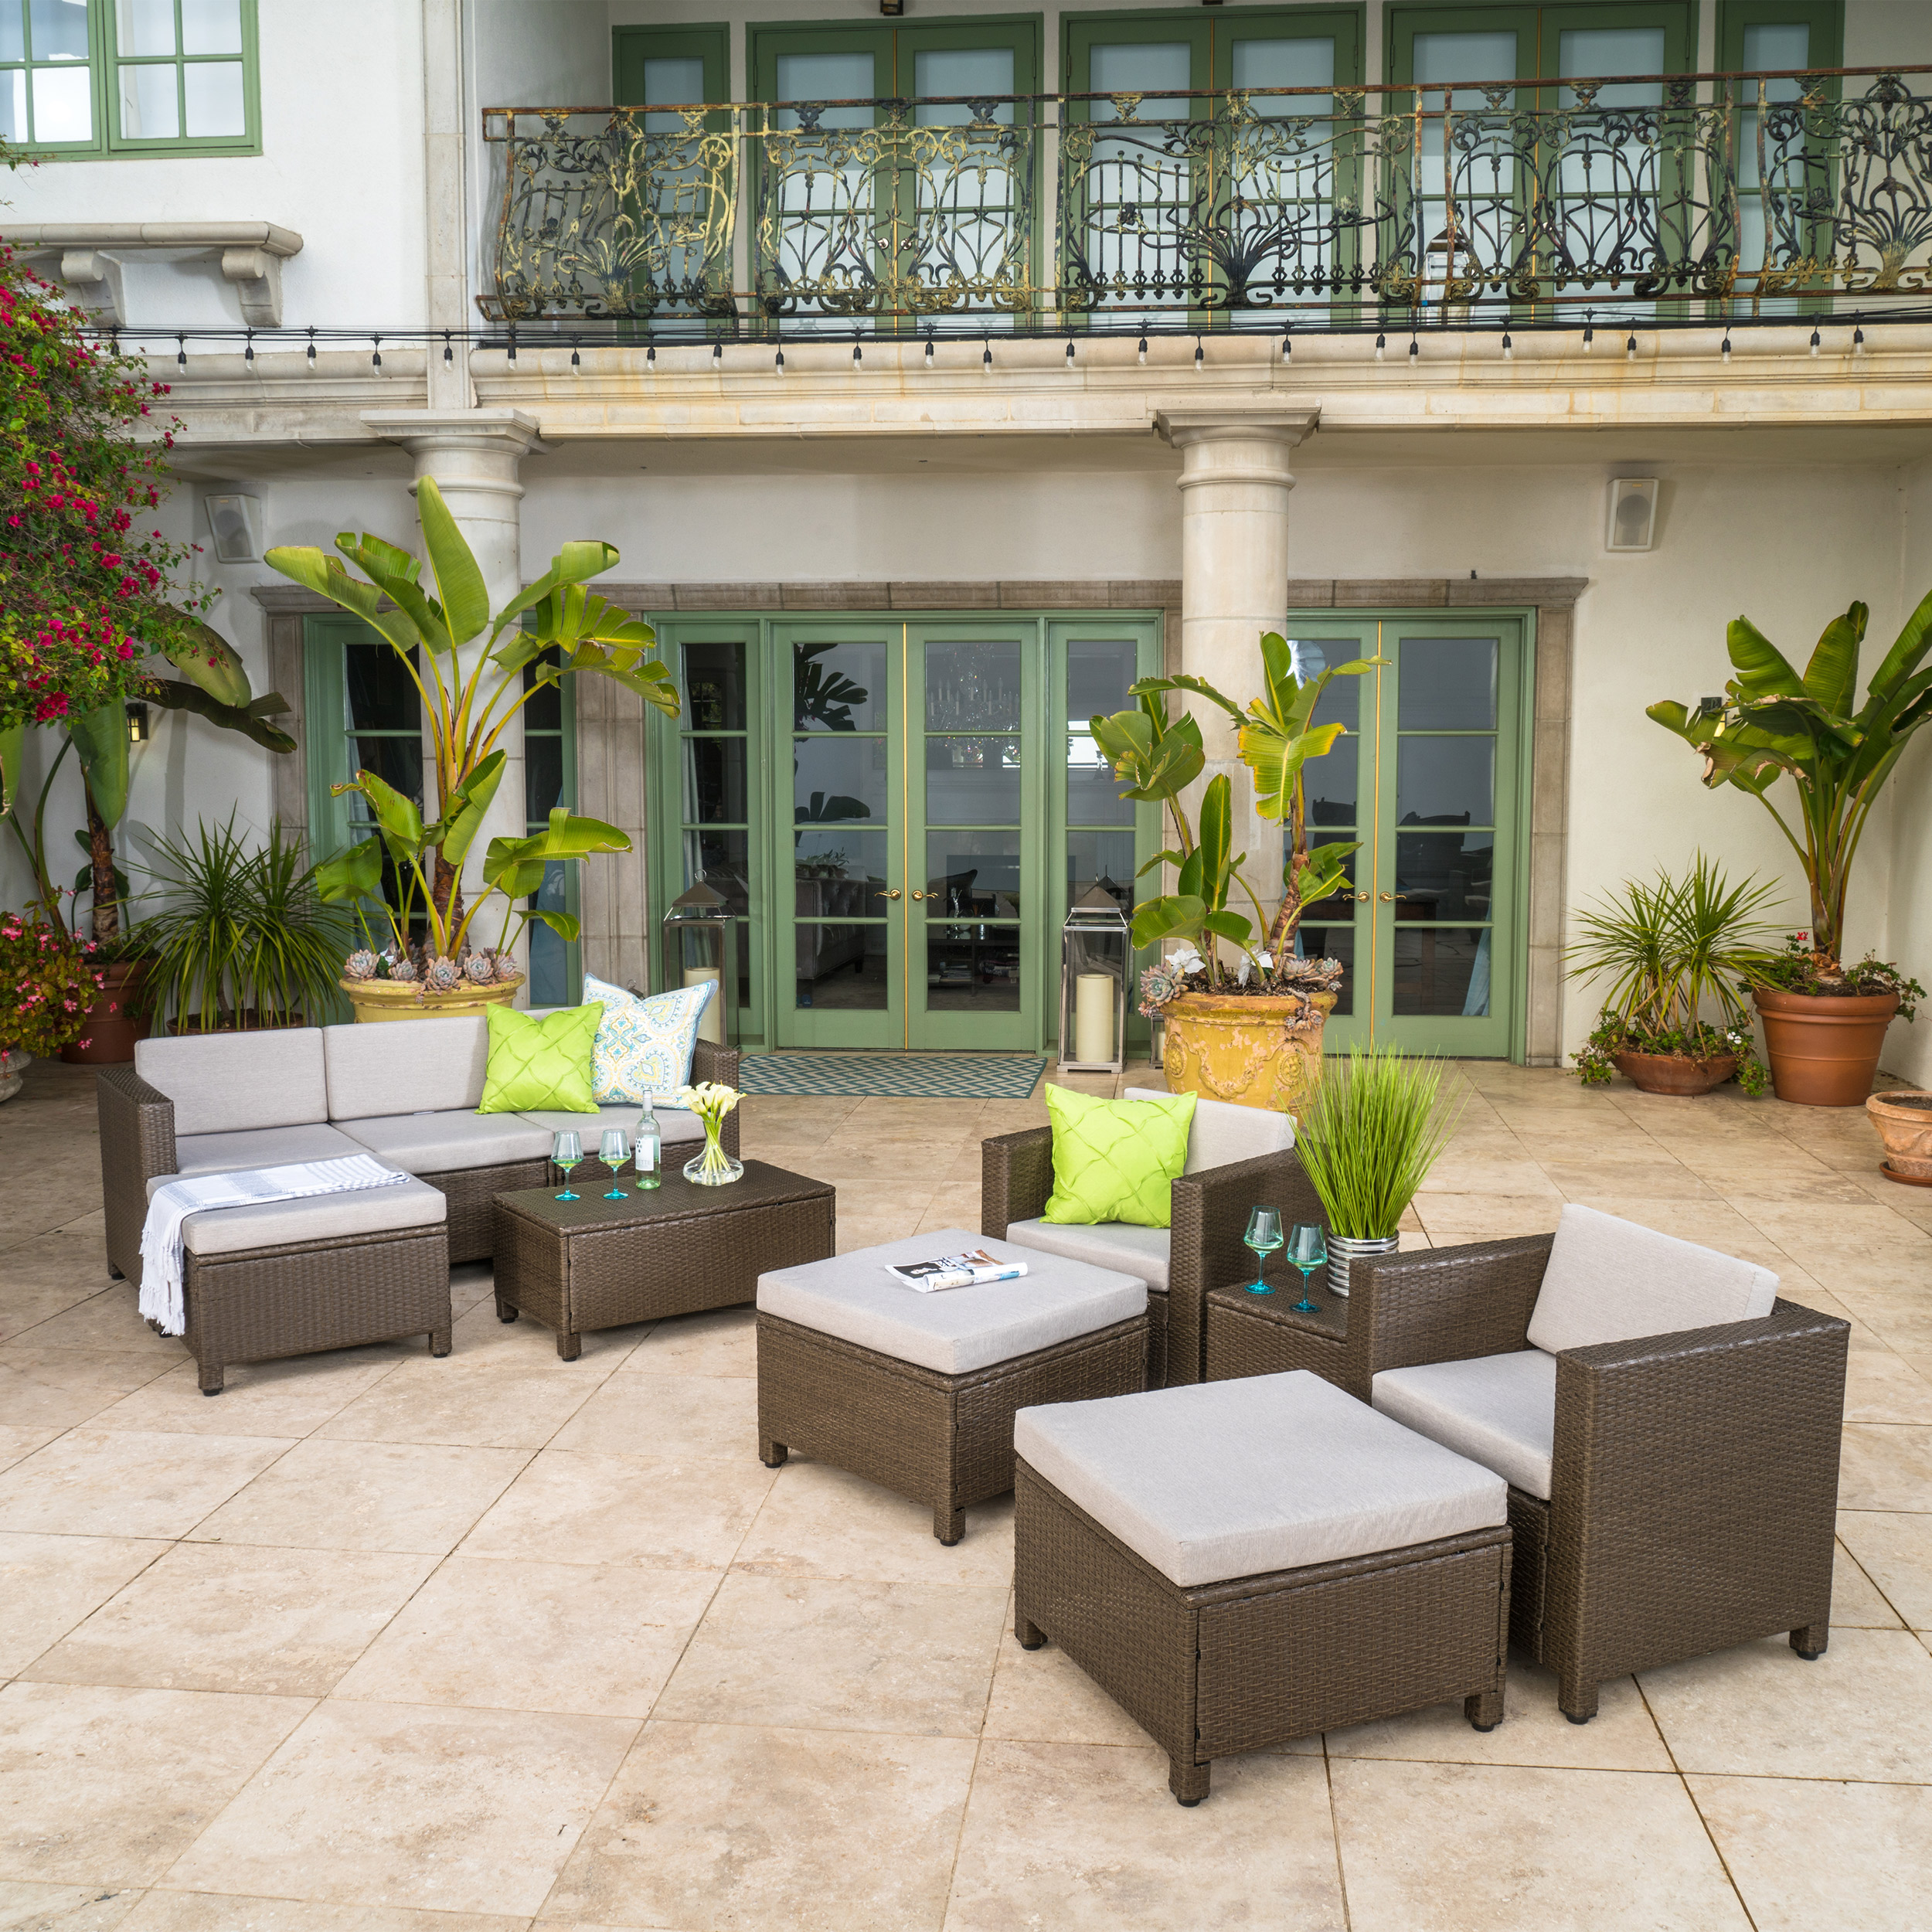 Cascada Outdoor 10 Piece Wicker Sofa Collection with Cushions, Brown, Ceramic Grey